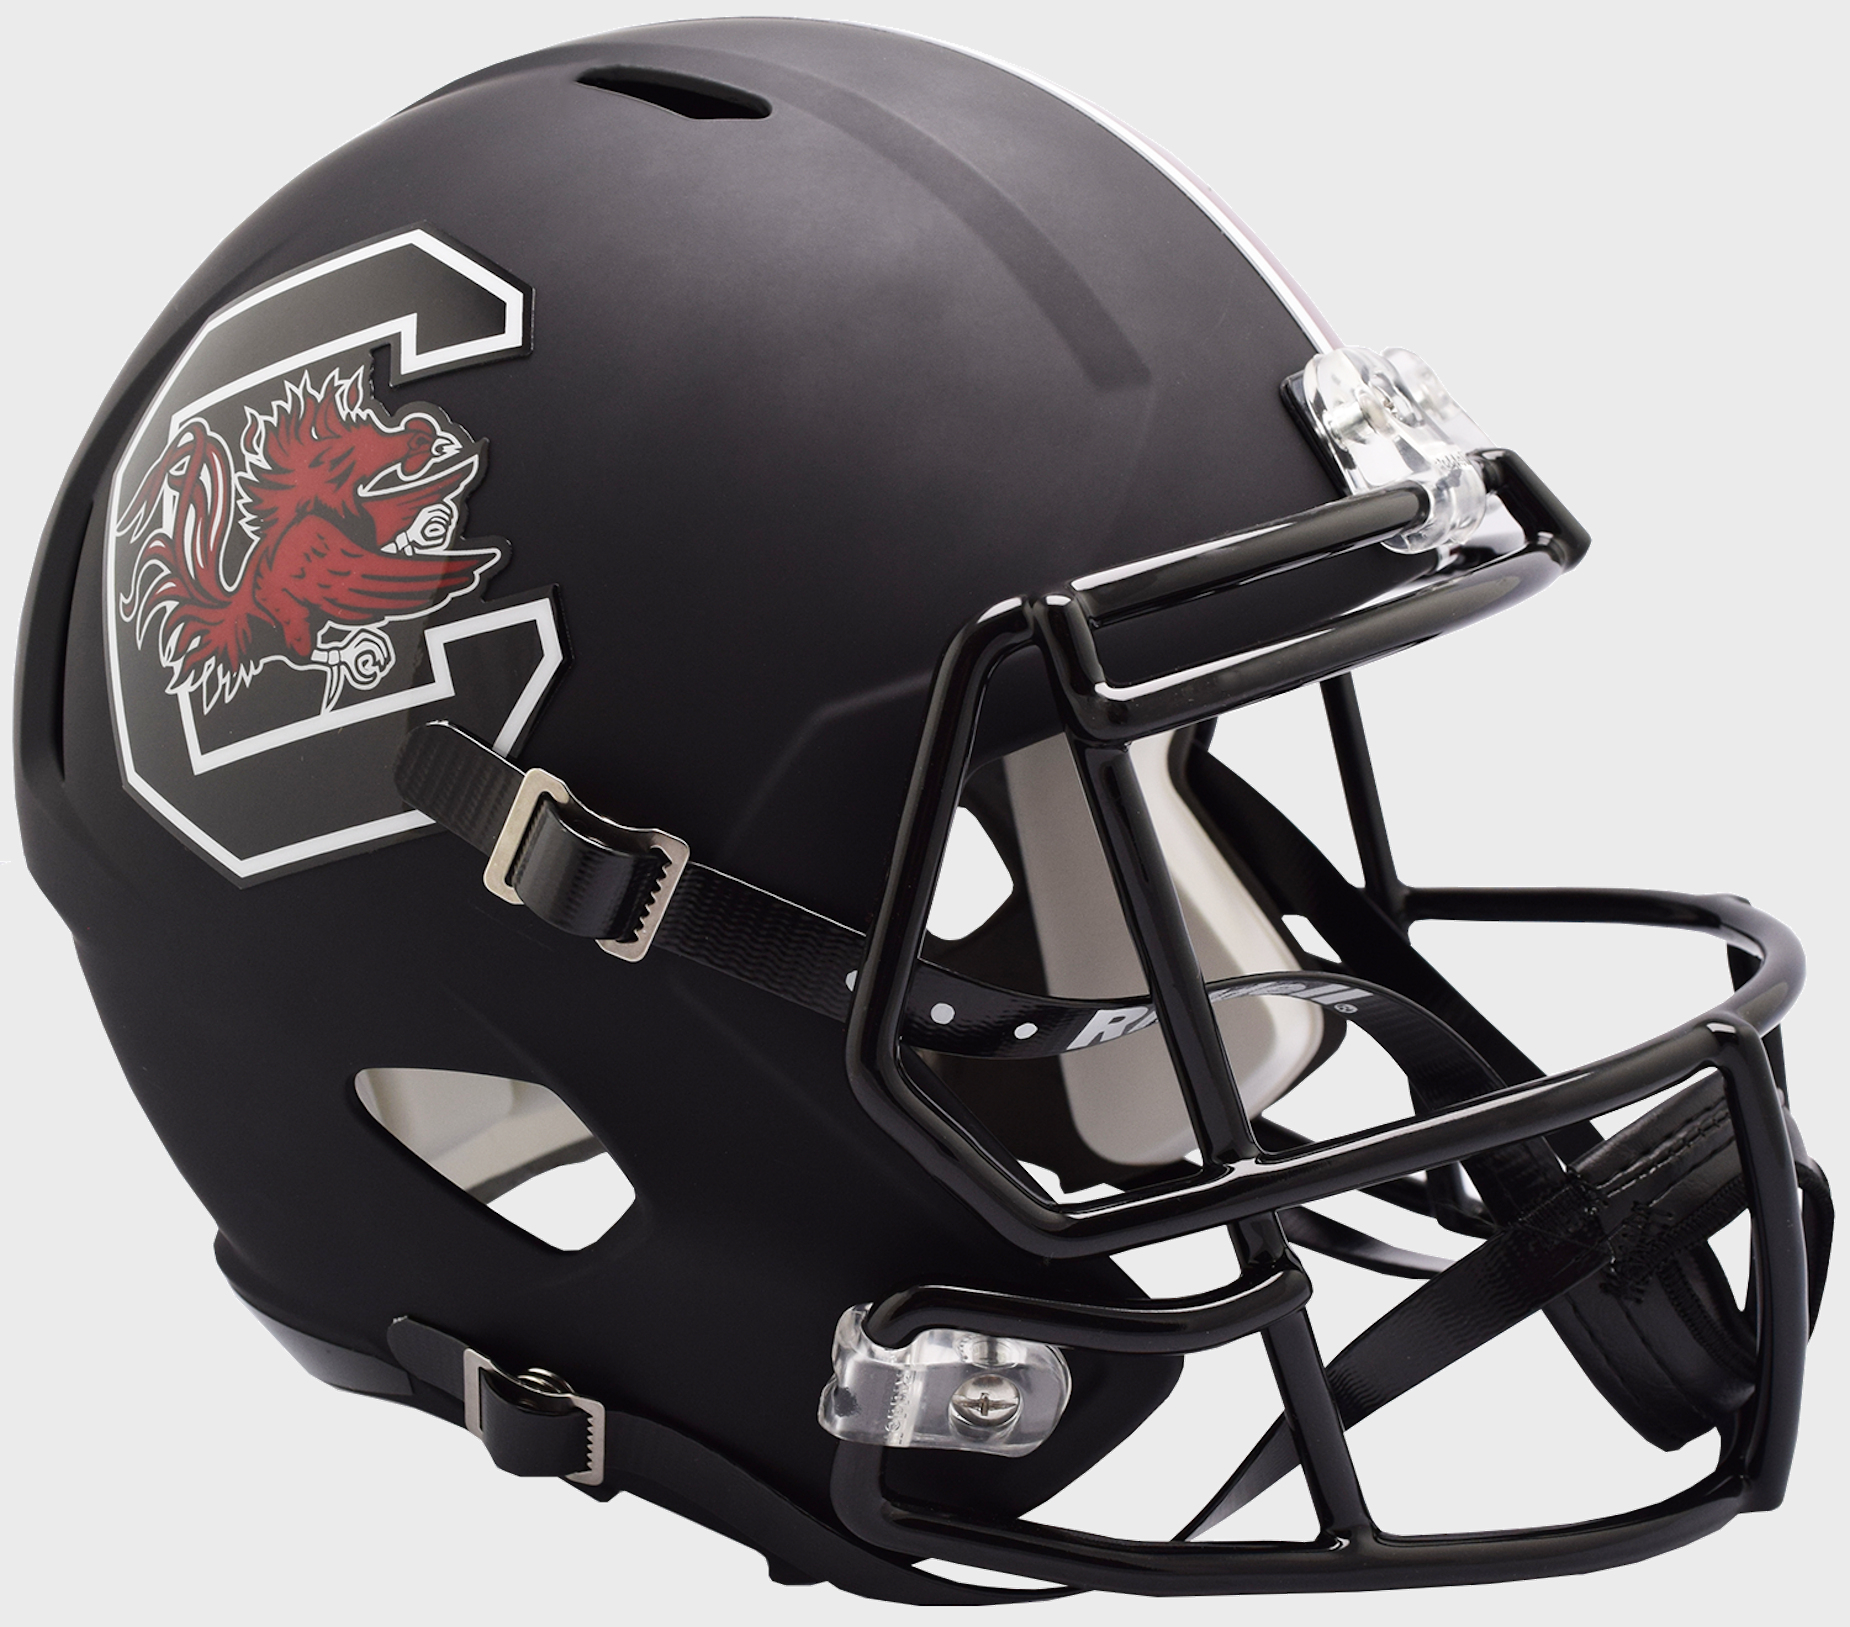 South Carolina Gamecocks Speed Replica Football Helmet B Matte Black B PSM-Powers Sports Memorabilia